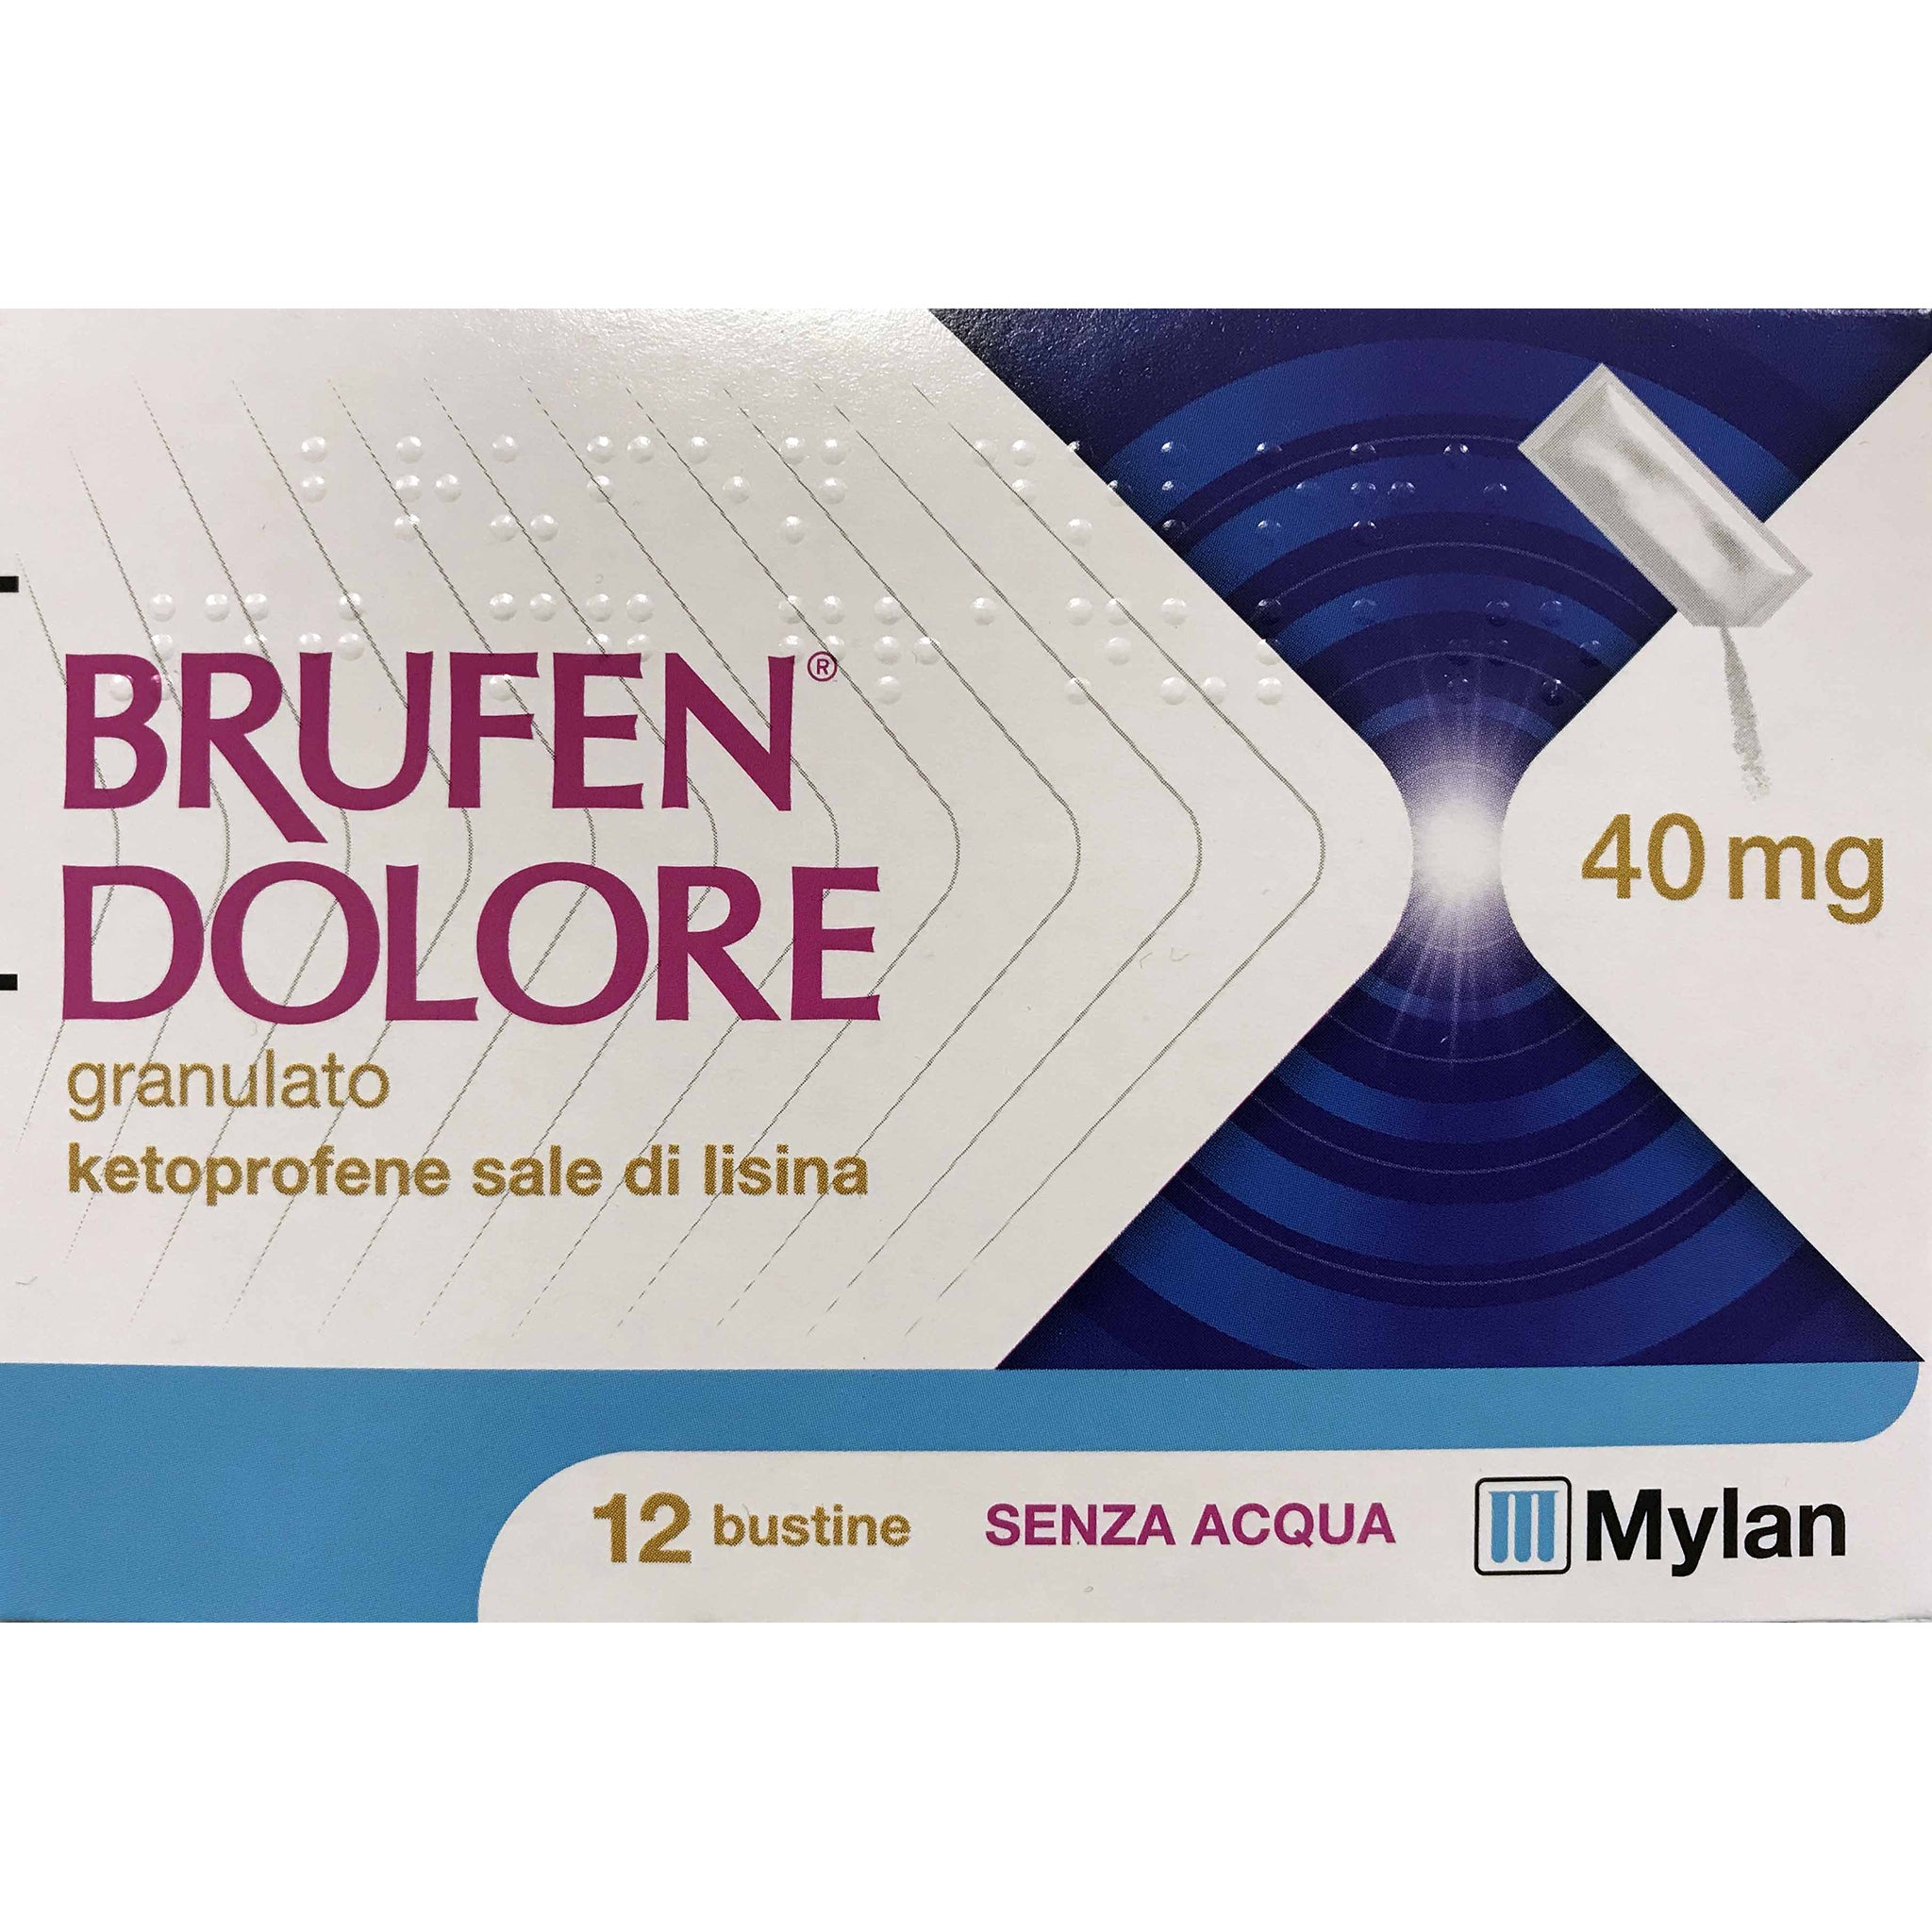 BRUFEN DOLORE OS 12 BUSTE 40MG